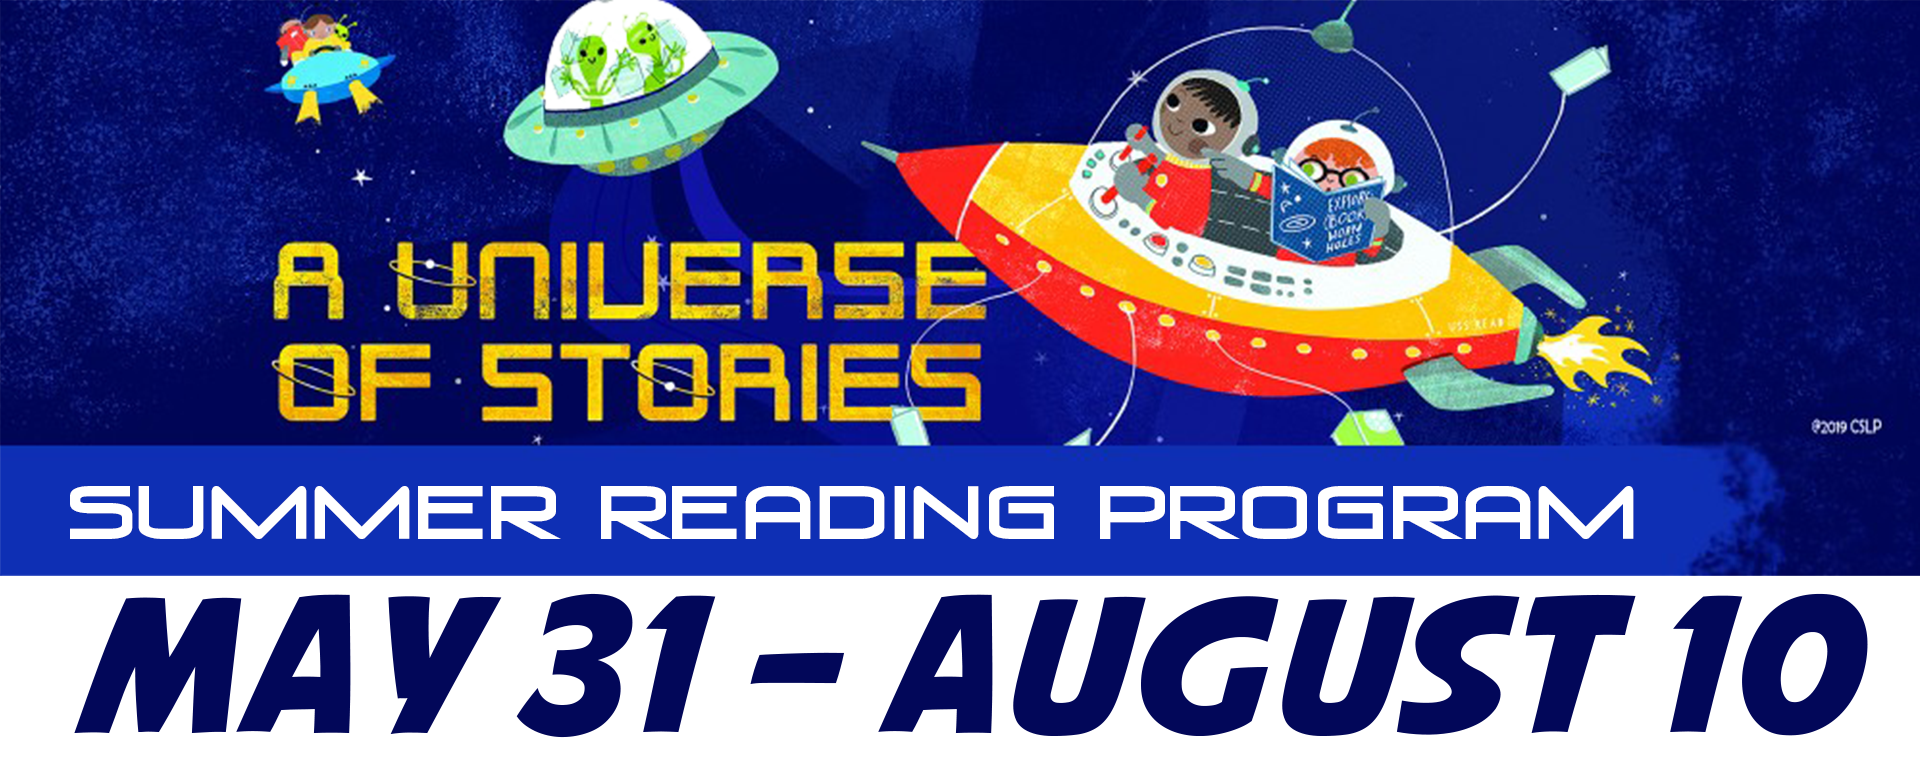 A Universe of Stories Banner